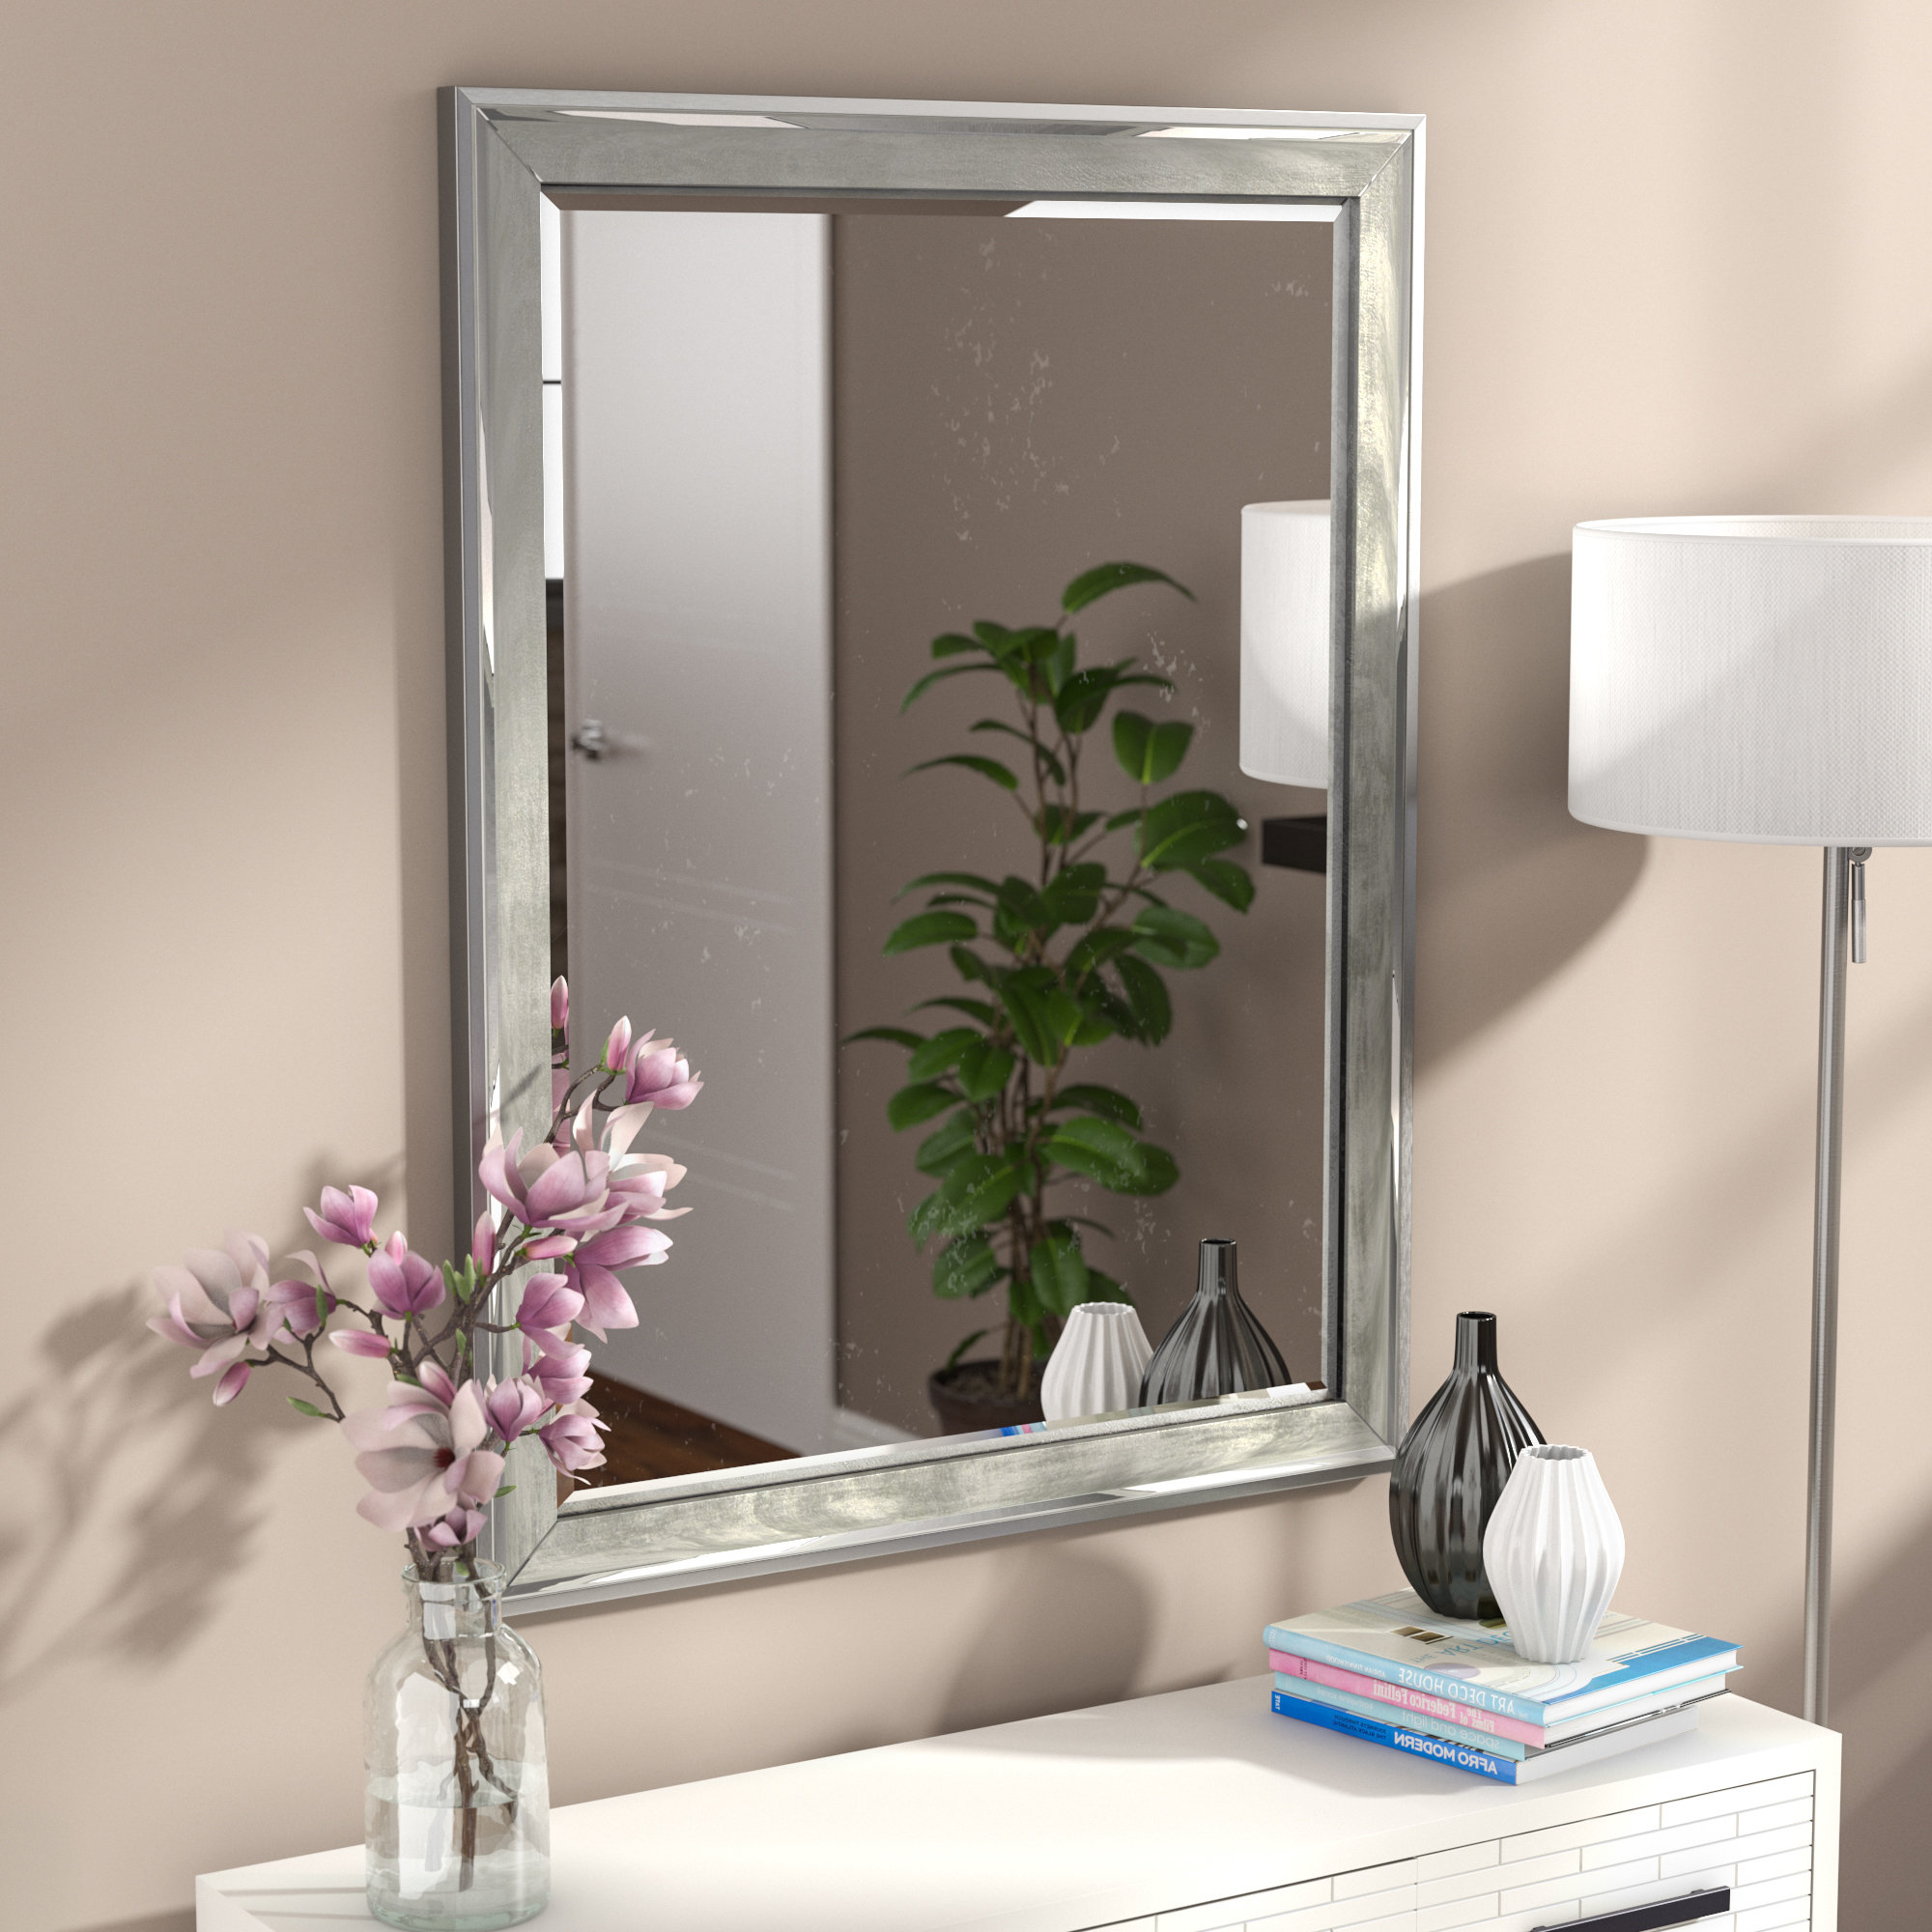 Modern & Contemporary Beveled Overmantel Mirrors Regarding 2020 Modern & Contemporary Beveled Overmantel Mirror (View 1 of 20)